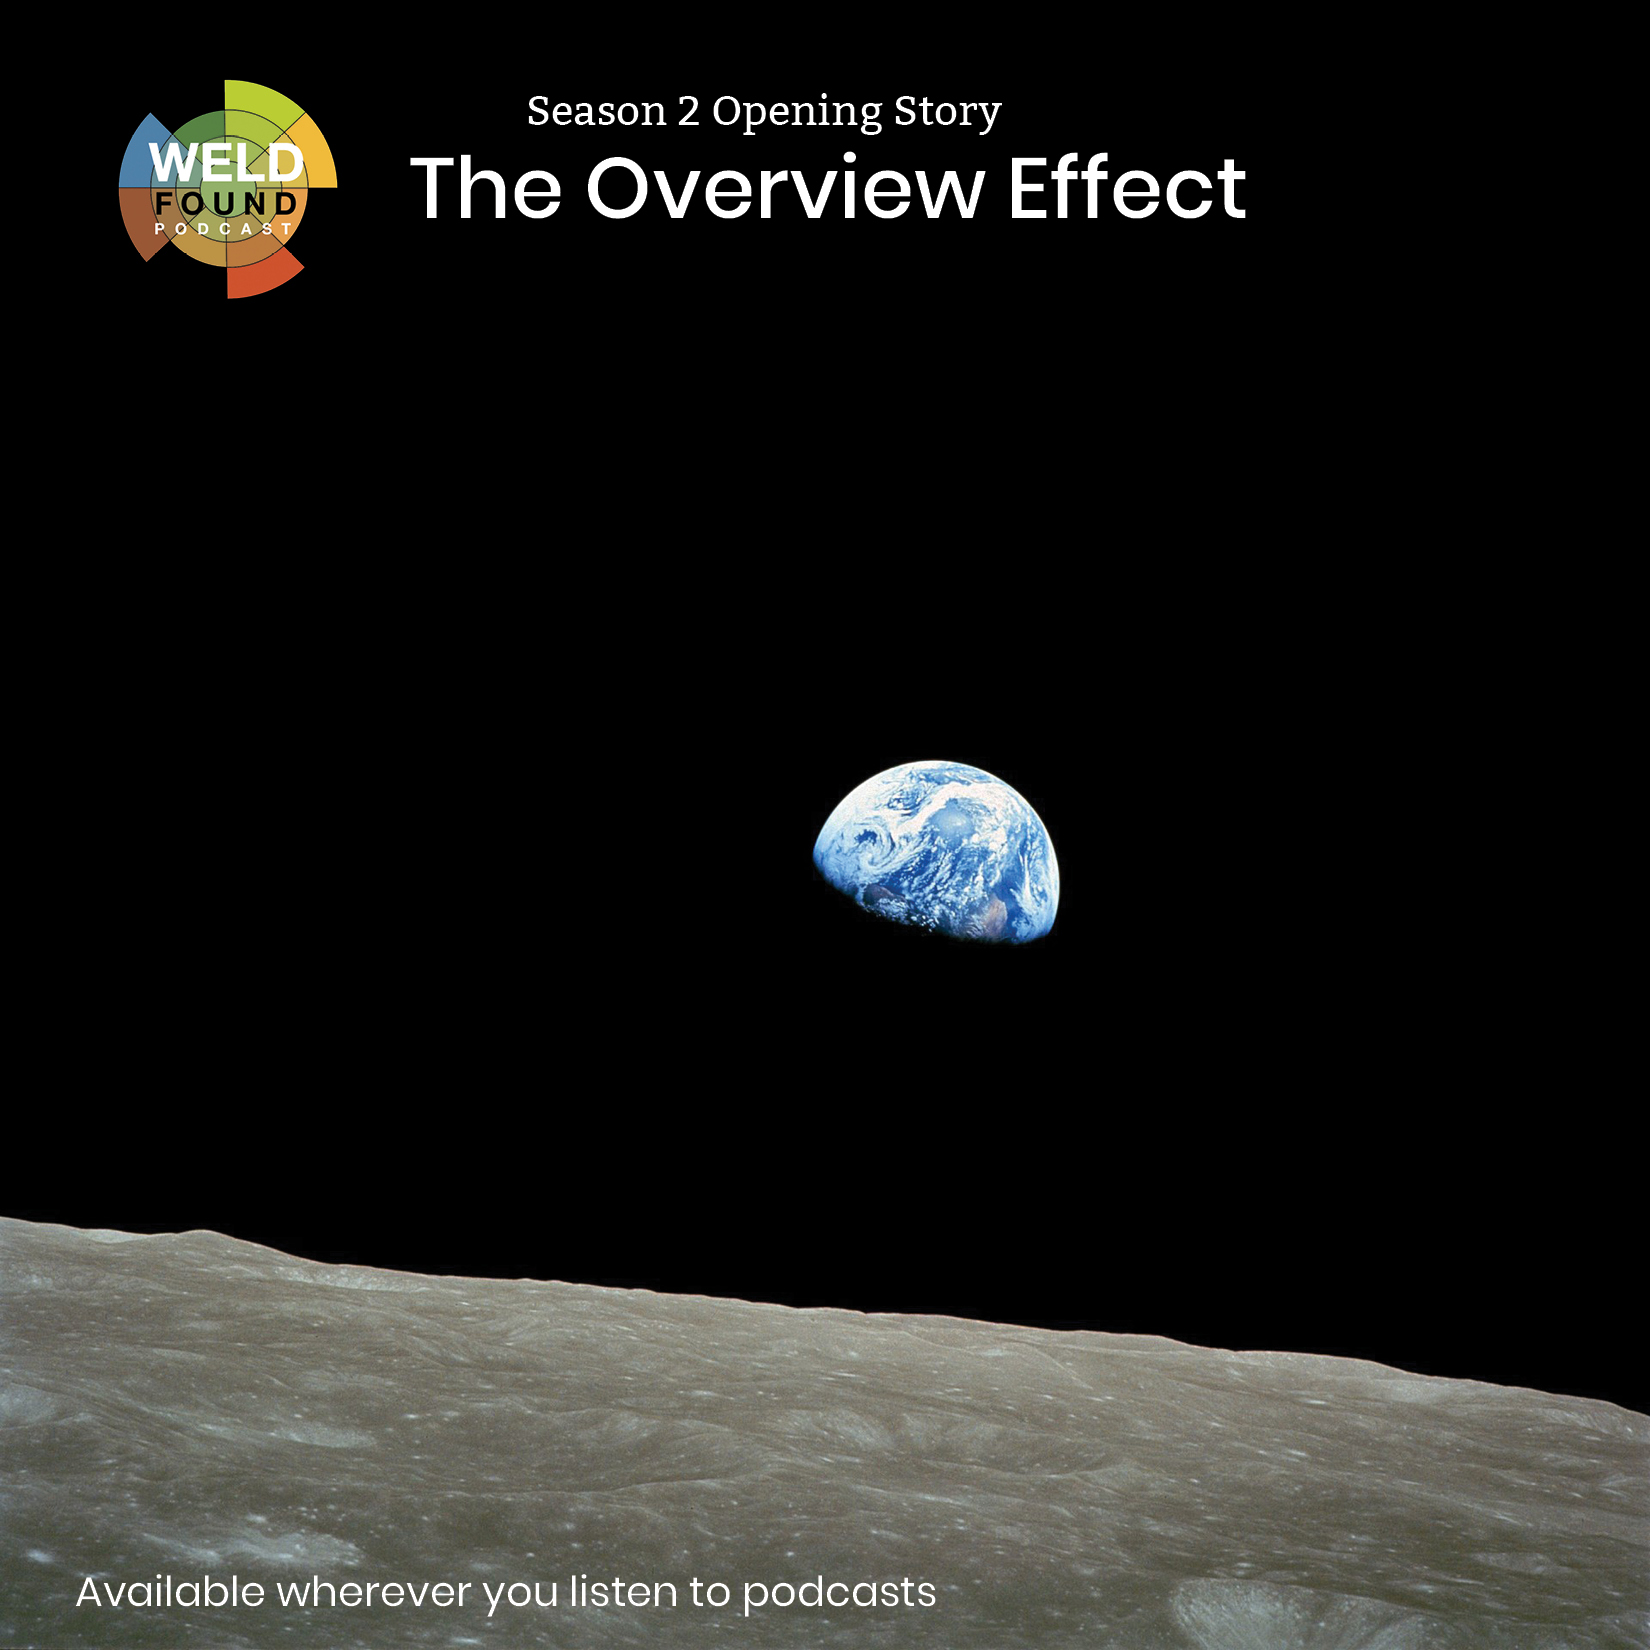 Weld Found Podcast Season 2: The Overview Effect